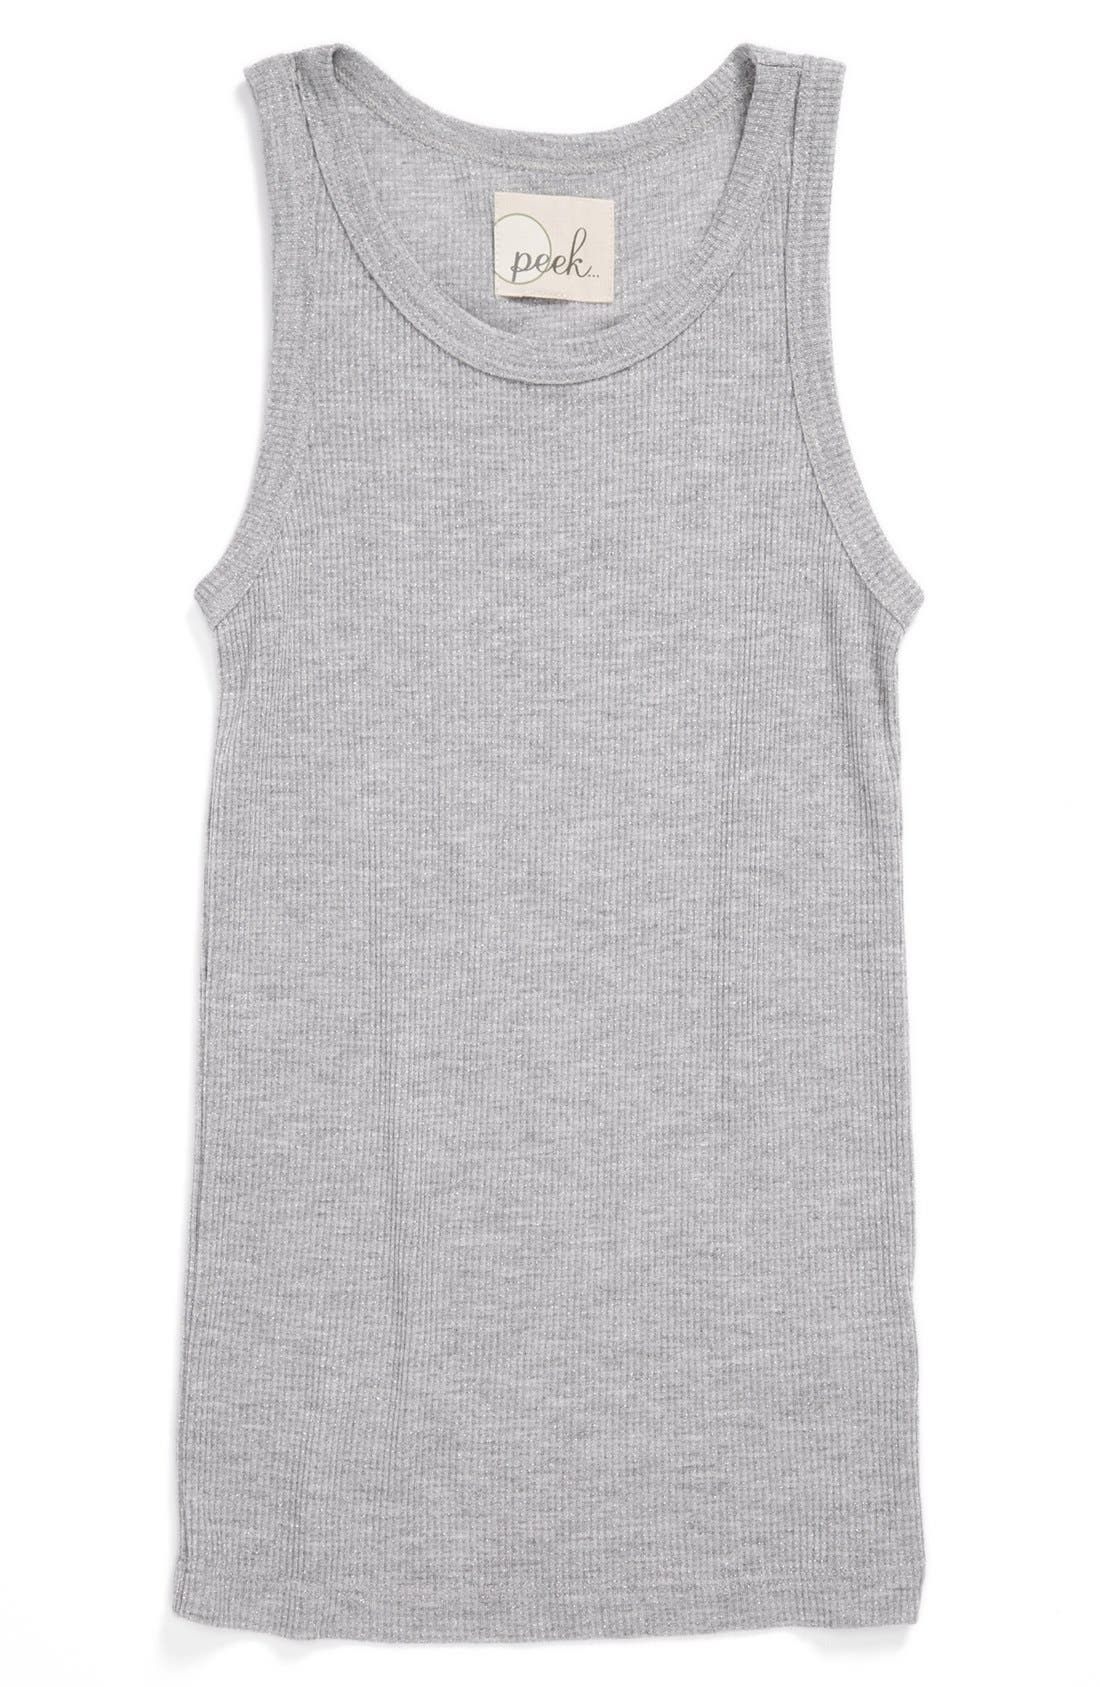 Alternate Image 1 Selected - Peek 'Merci' Tank (Toddler Girls, Little Girls & Big Girls)